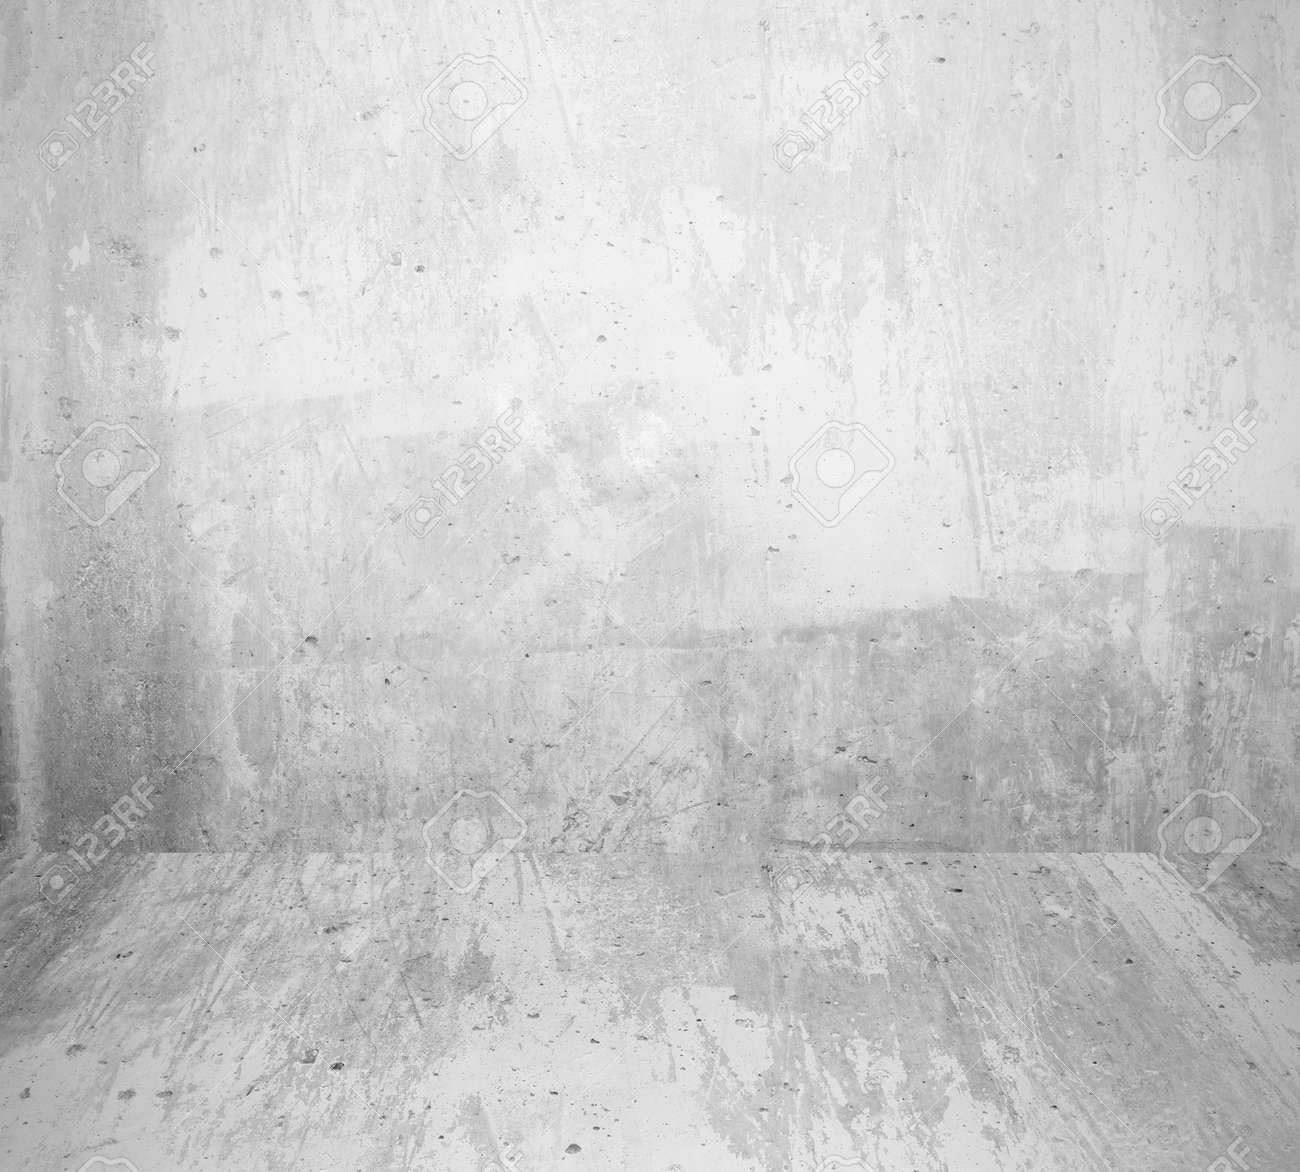 interior room with grunge white wall and floor - 157492267